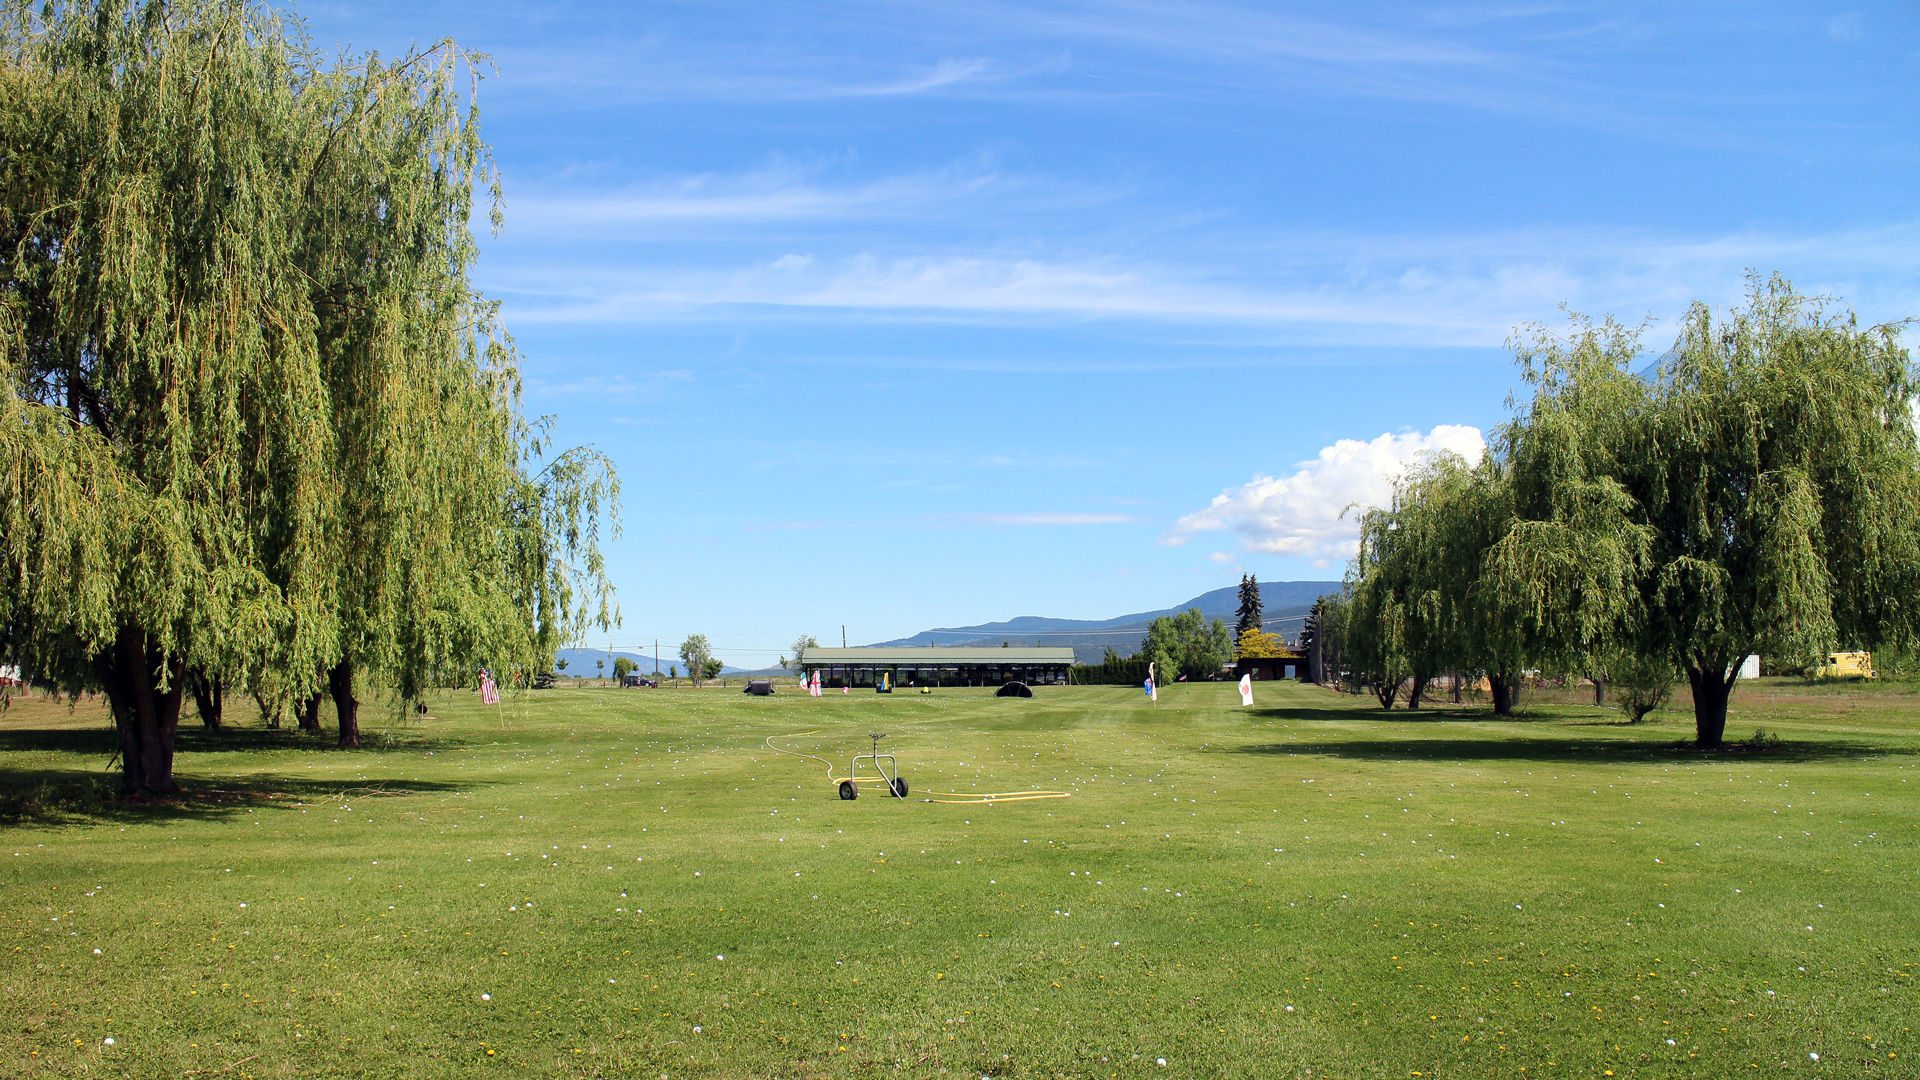 Plenty of space to practise driving range kelowna